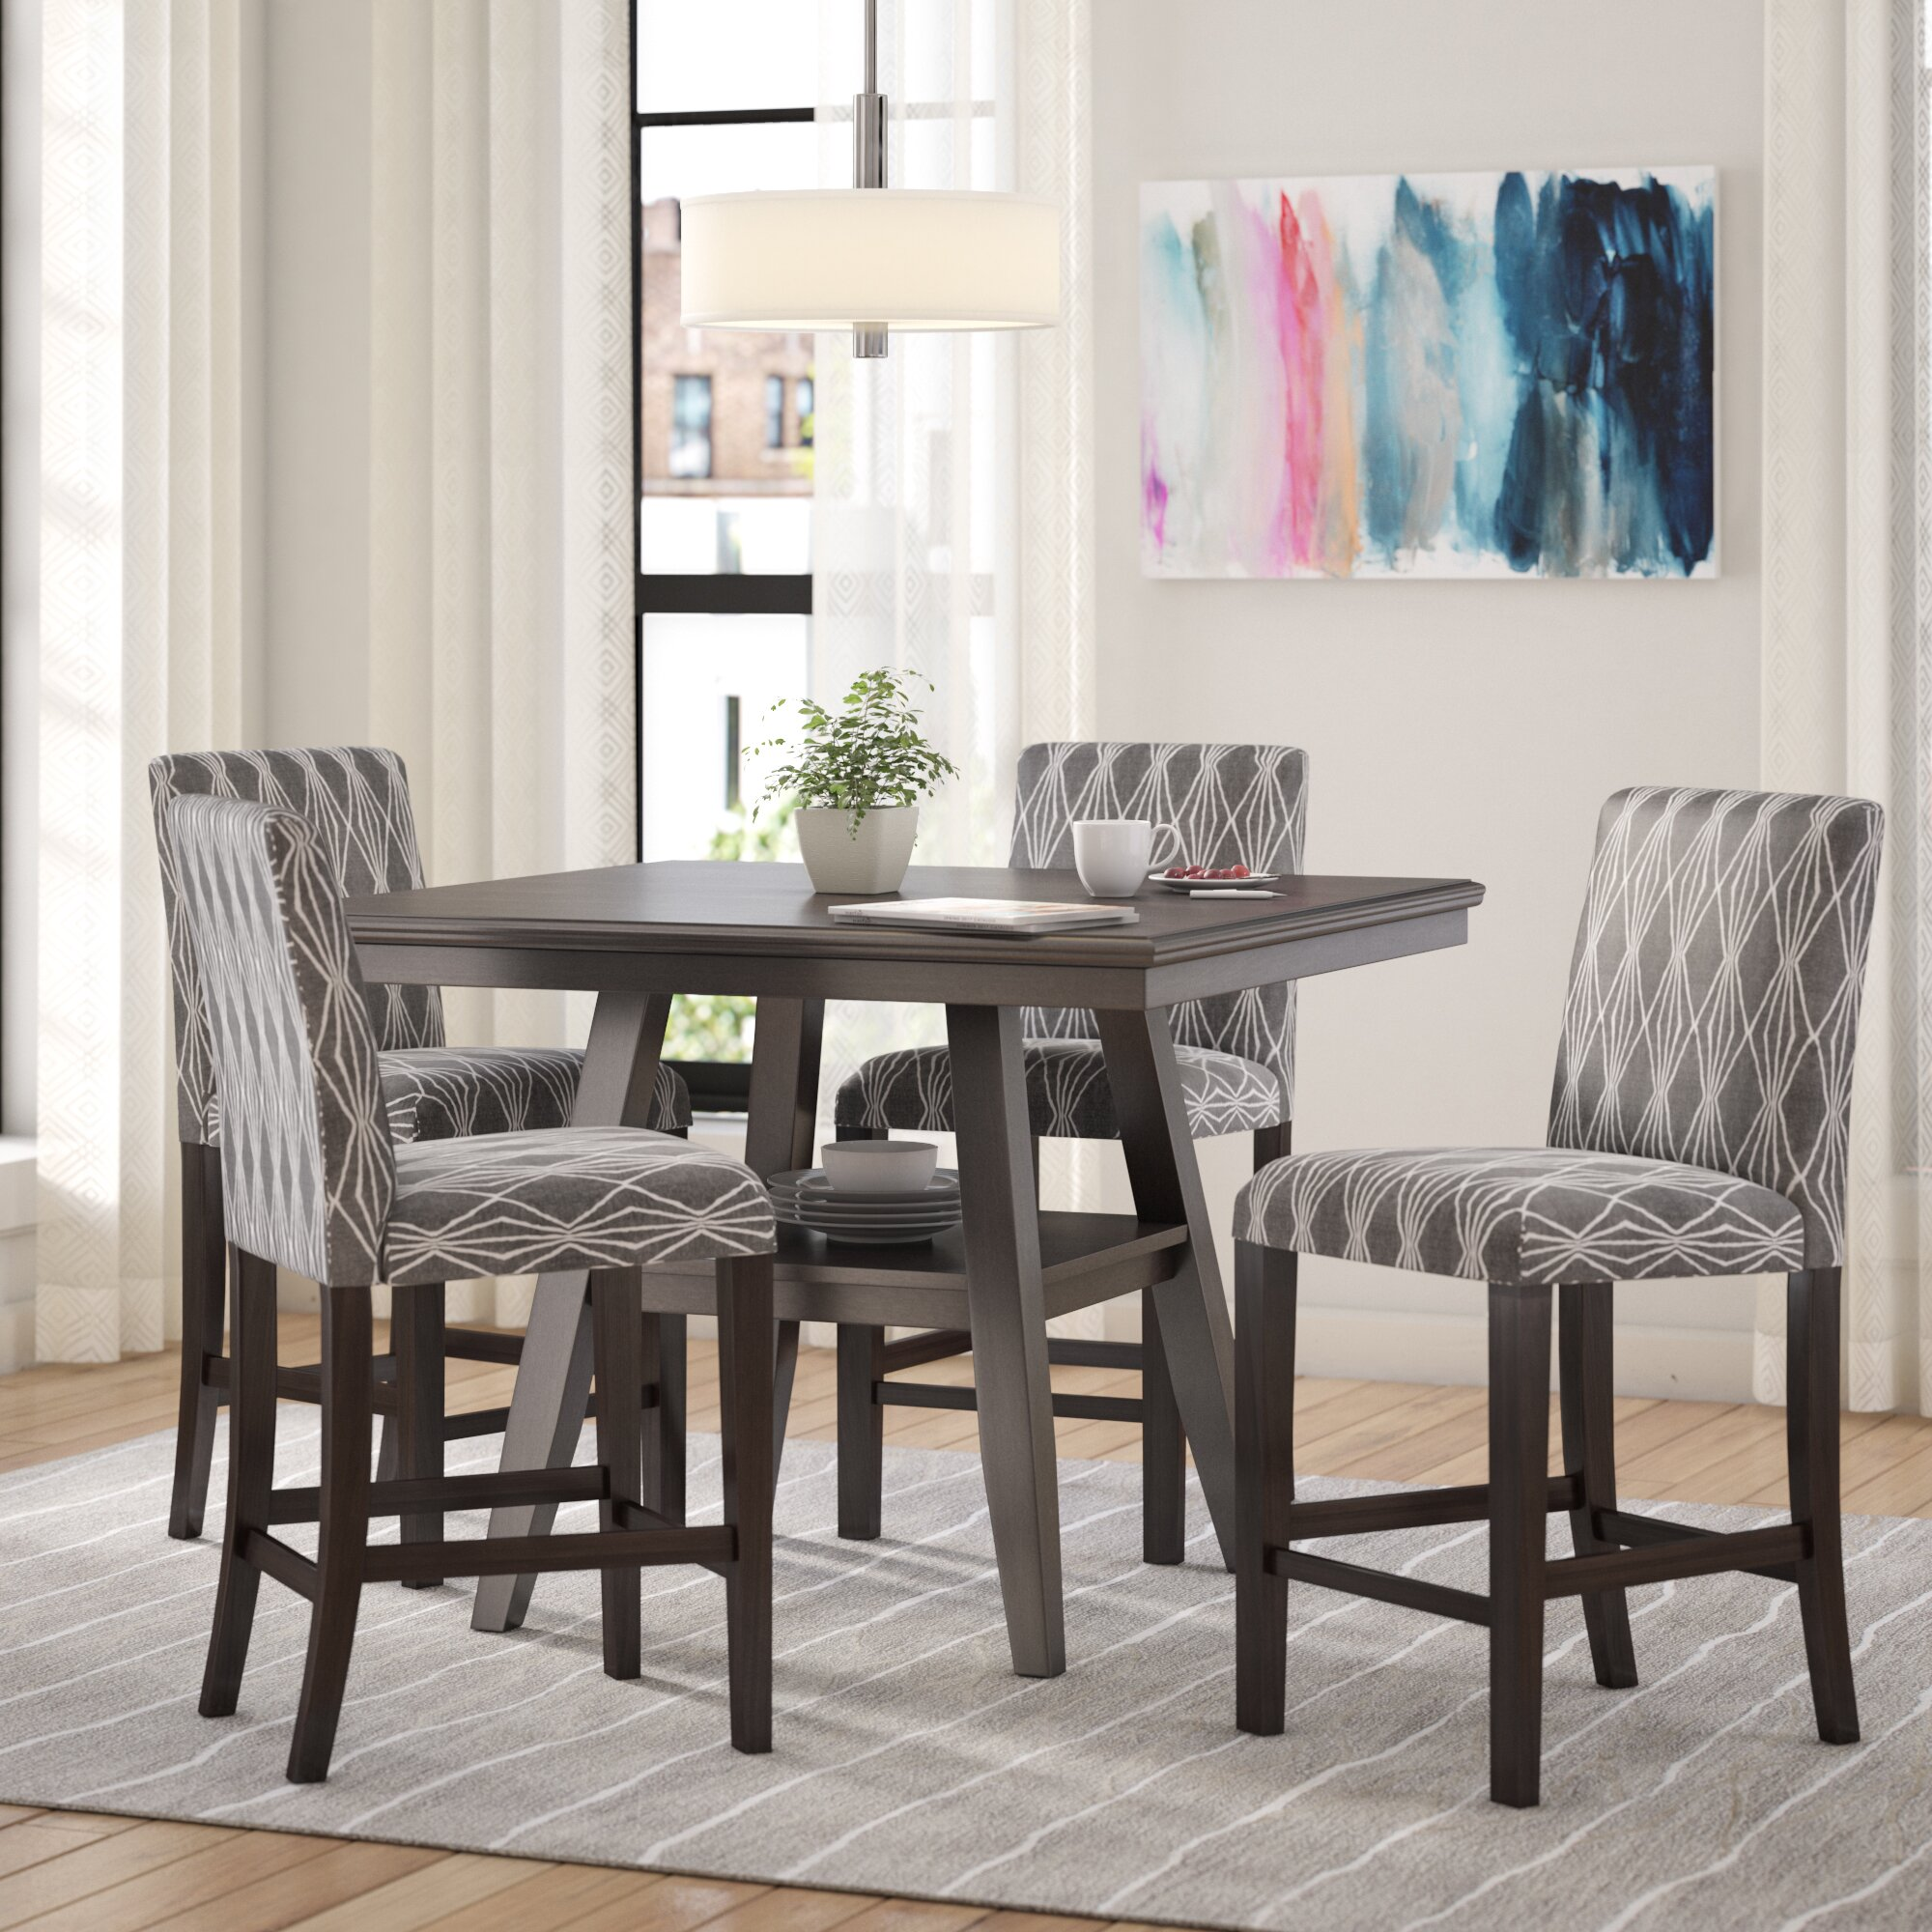 Dining table cover 8 seater garden table and chairs for 120 round table seats how many